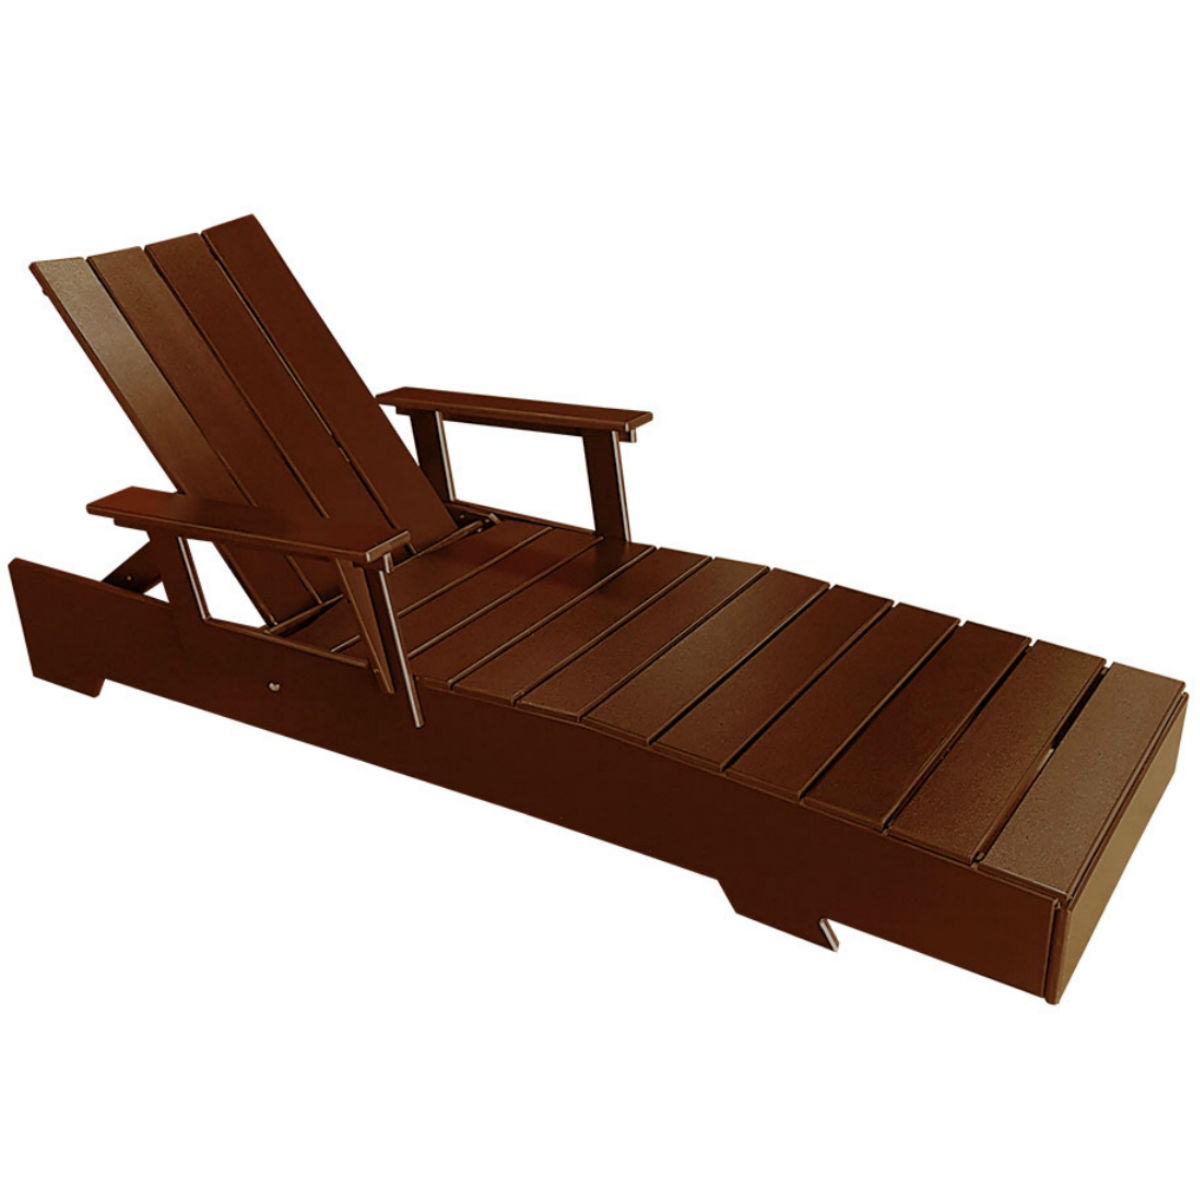 Plastic Lounge Chair Modern Muskoka Lounge Chair